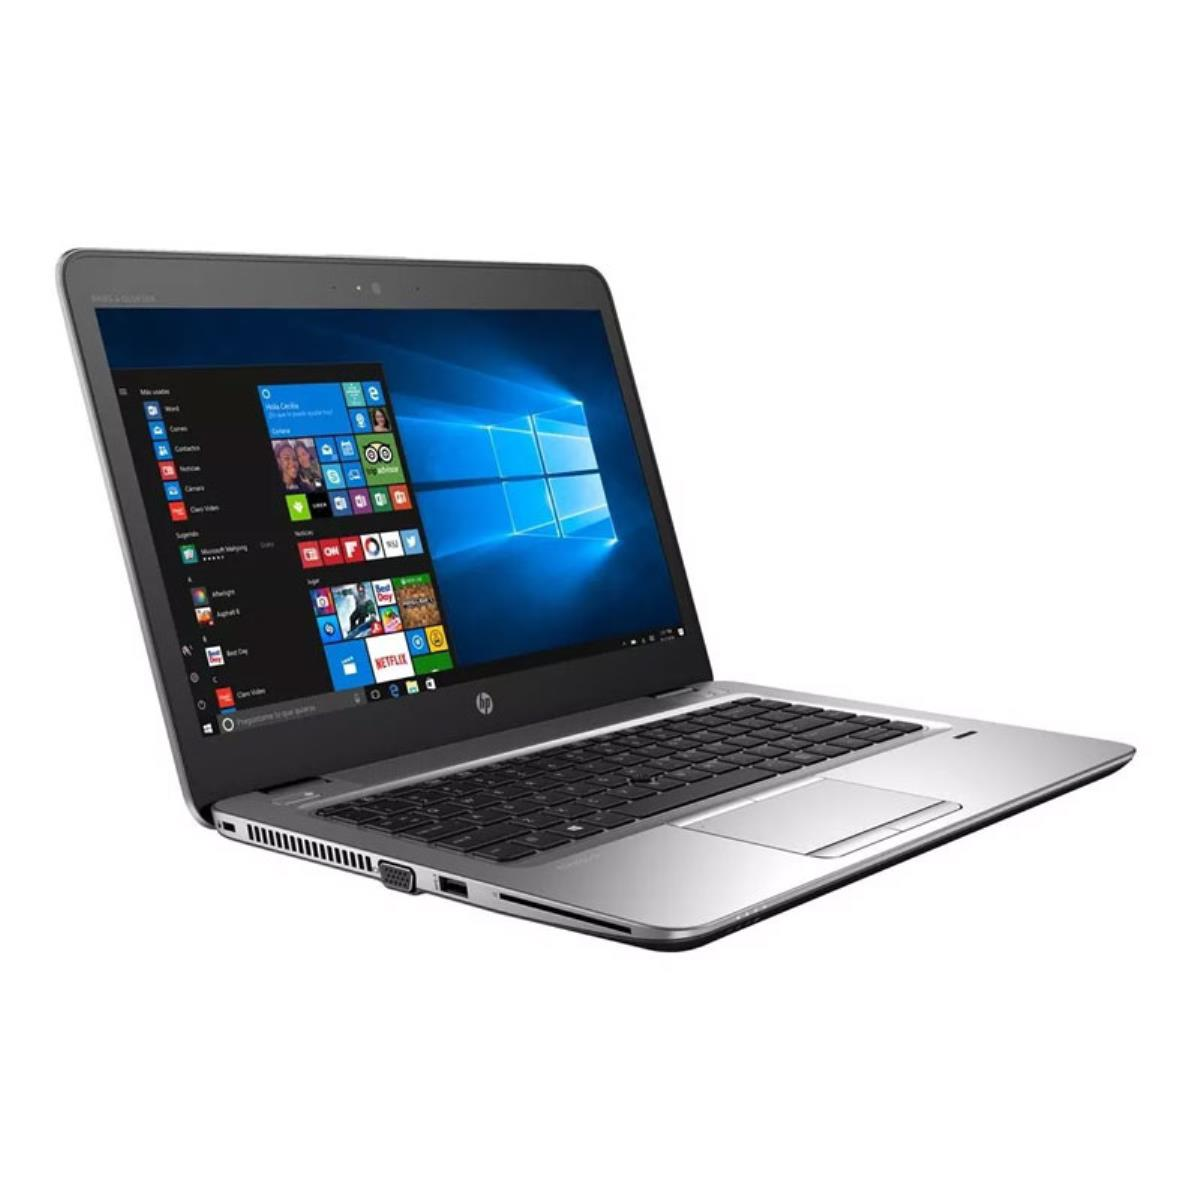 "Art. Portátil HP Elitebook 840 G3 GRADO B SIN CAMARA (Intel Core i7 6600u 2.6Ghz/8GB/240SSD/14""/NO-DVD/W8PRO) Preinstalado"